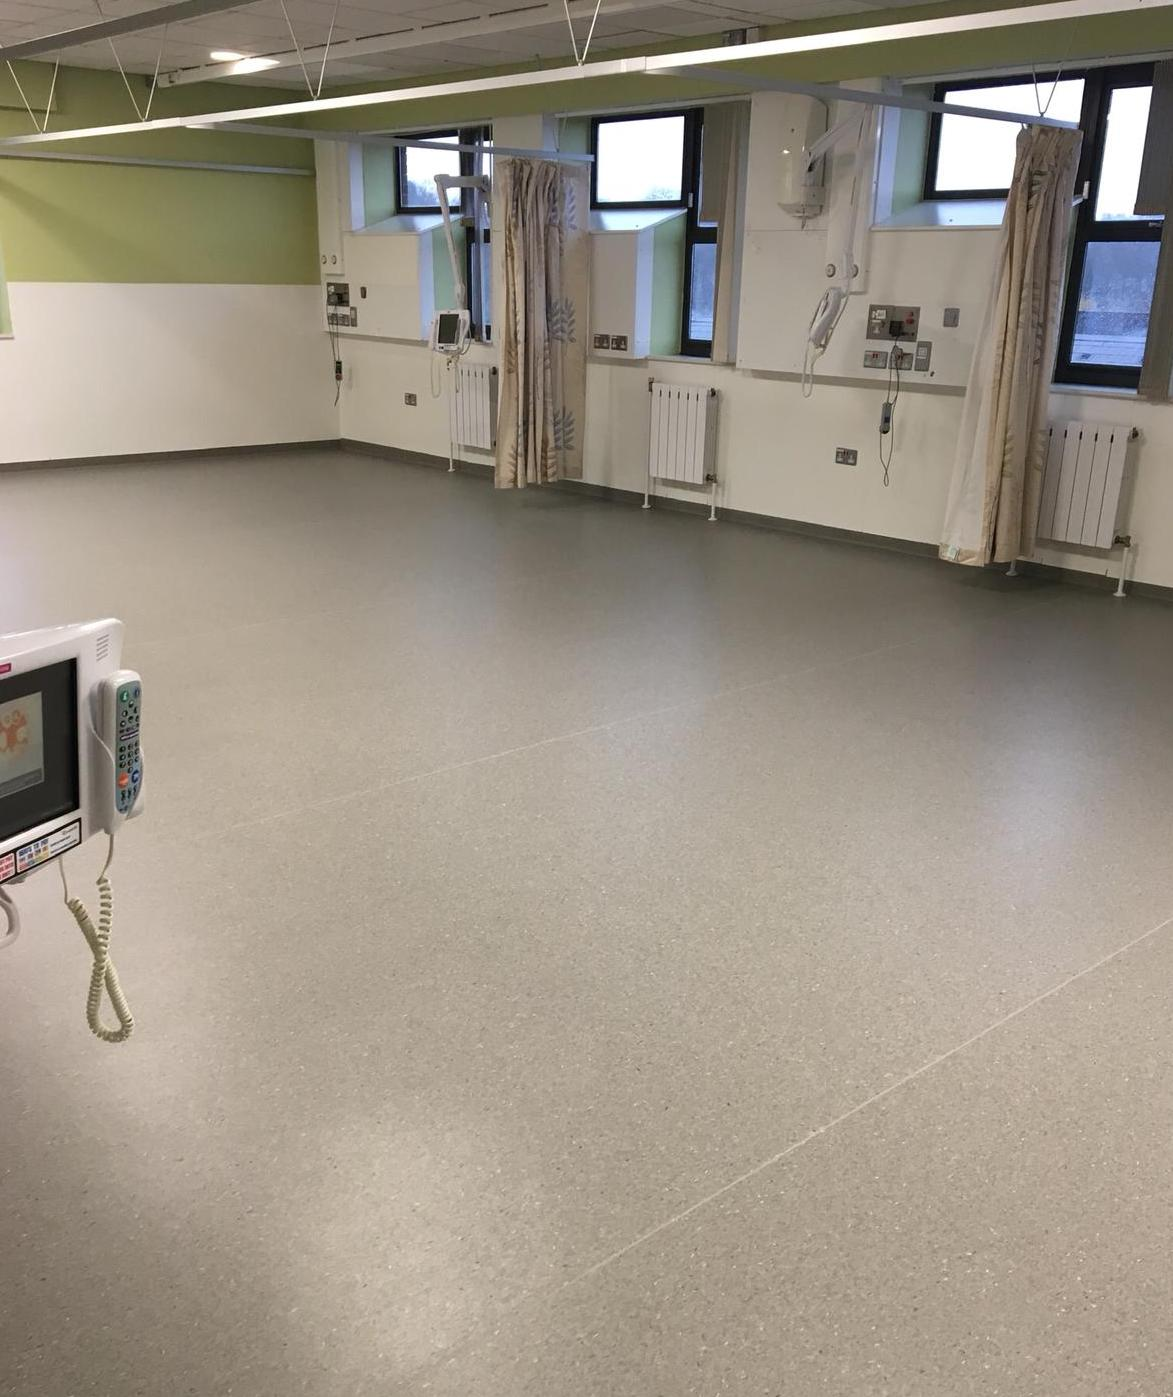 Full ward refurb for Firth 8 dementia-friendly ward at Northern General hospital by A Cumberlidge